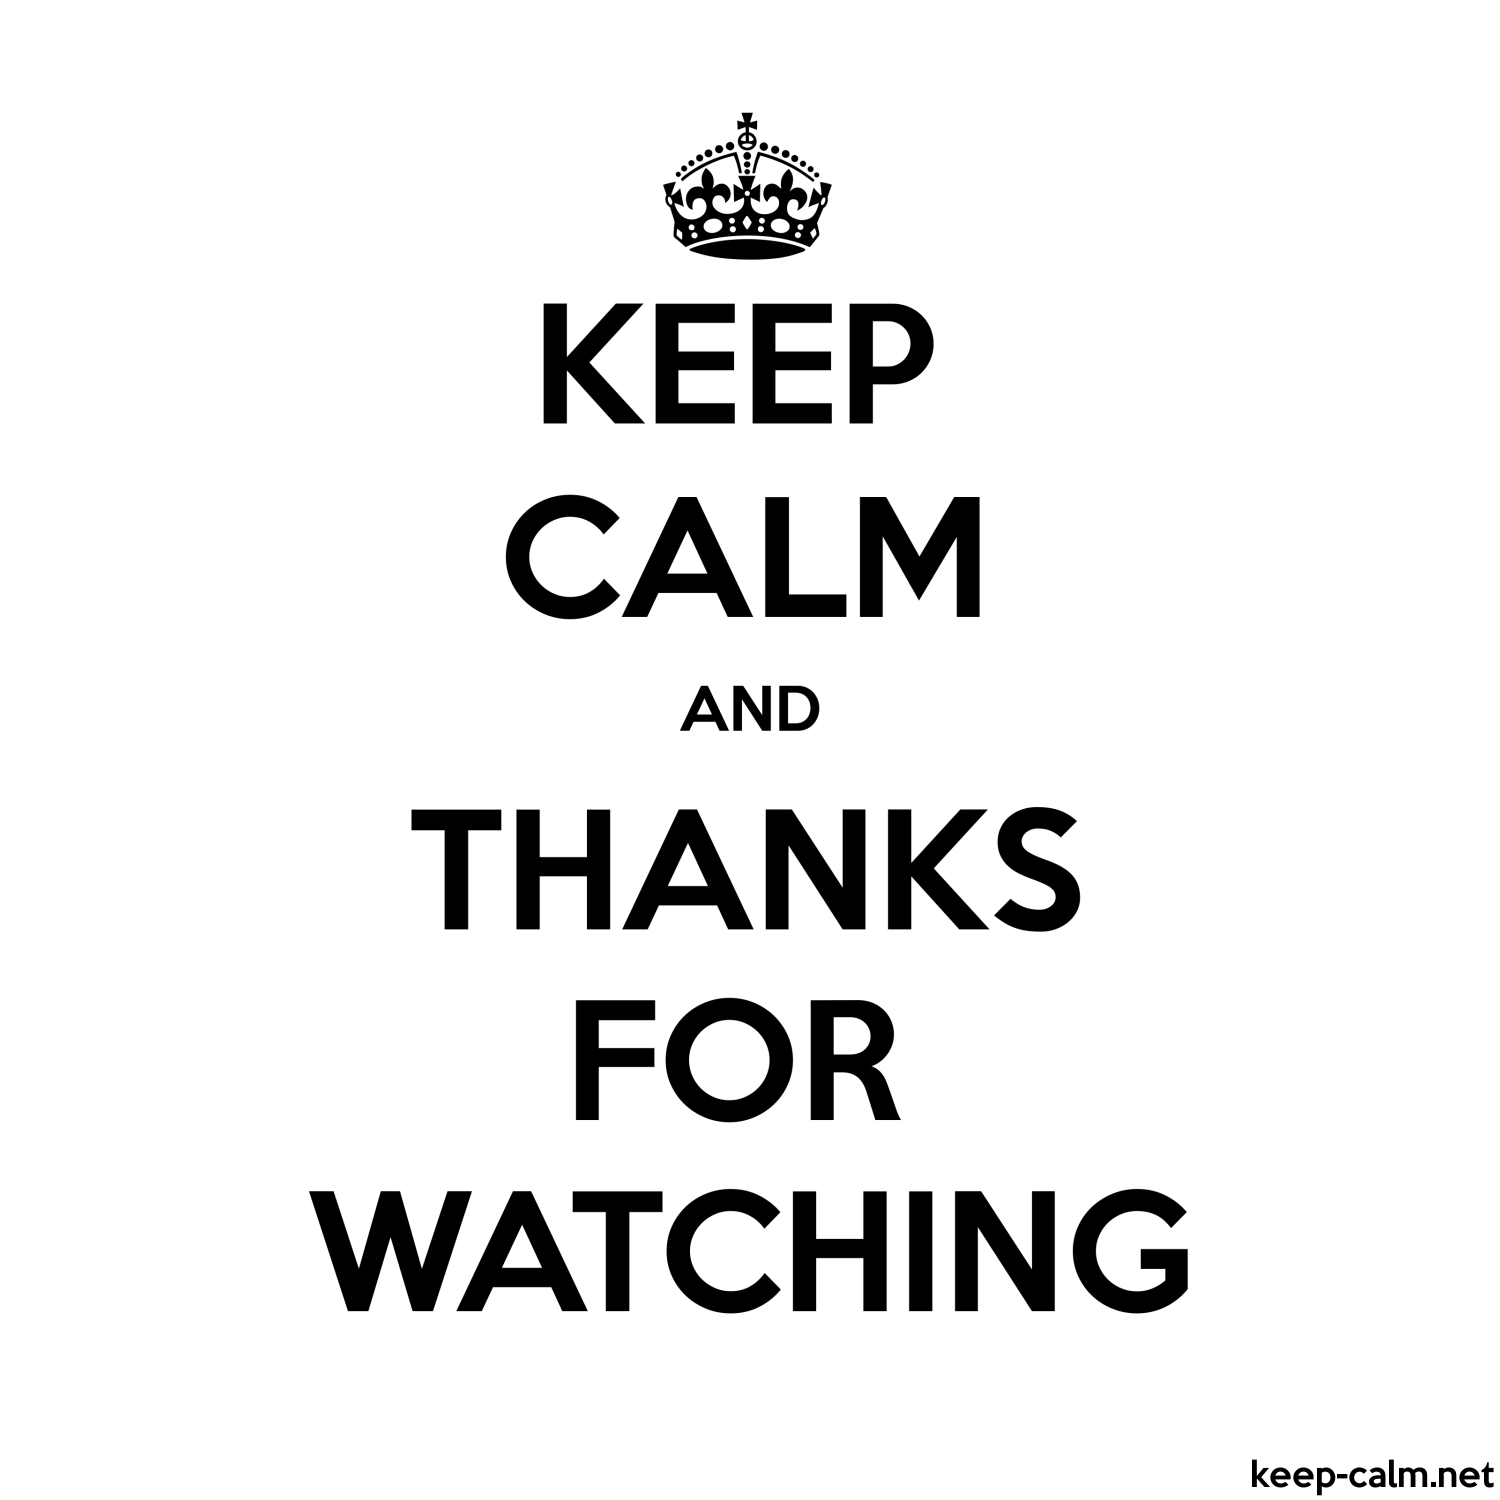 KEEP CALM AND THANKS FOR WATCHING | KEEP-CALM net